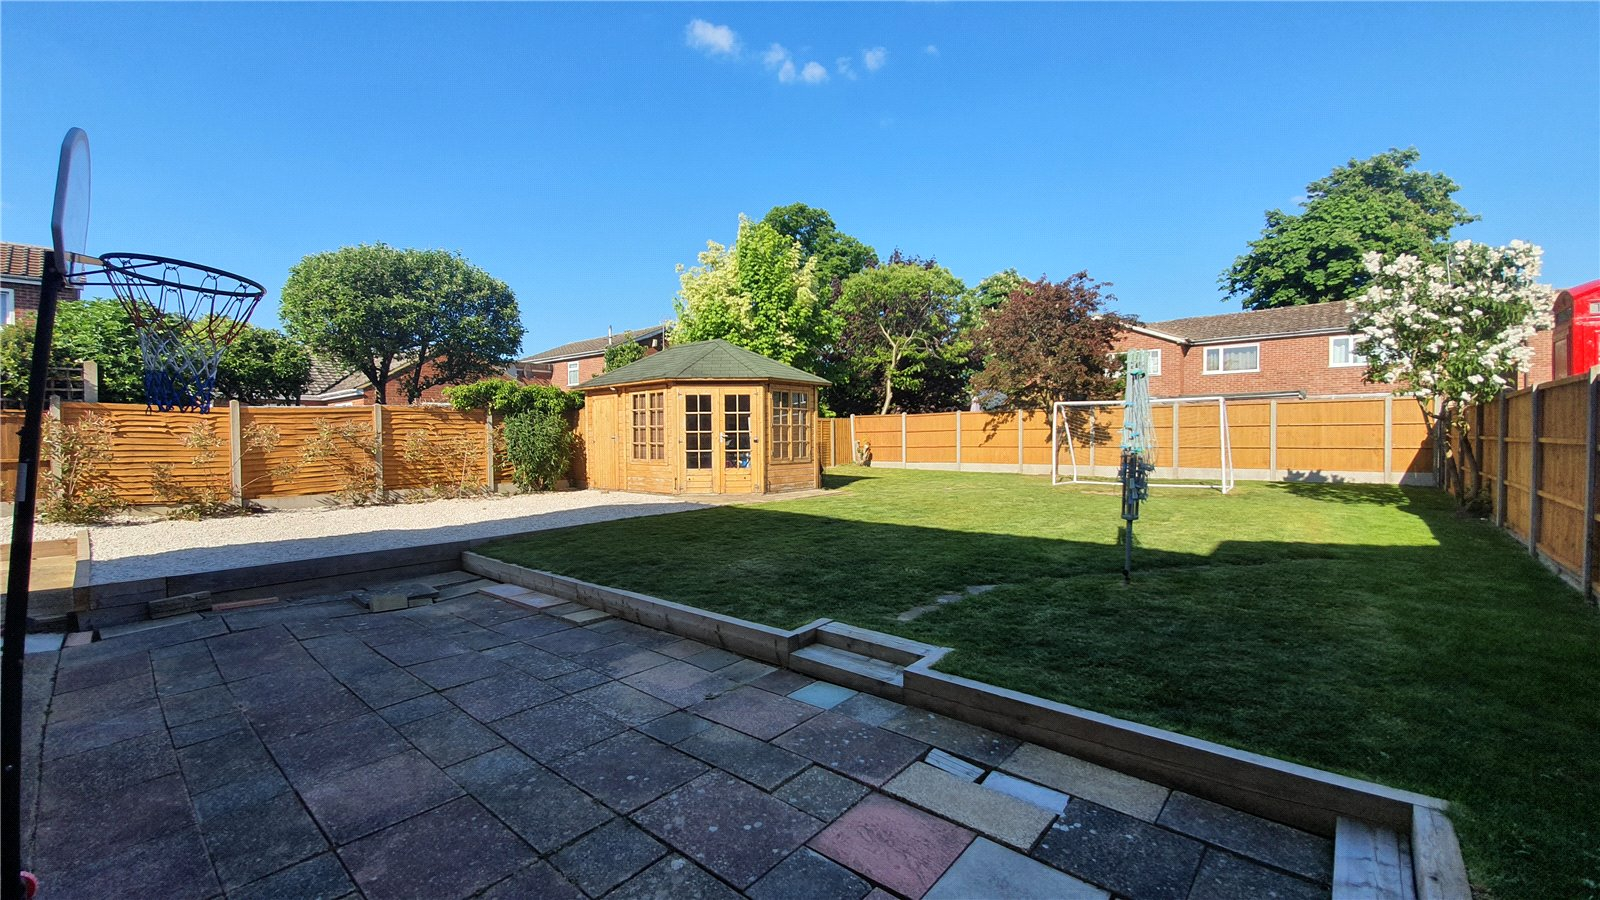 3 bed house for sale in The Sycamores, Little Paxton 13